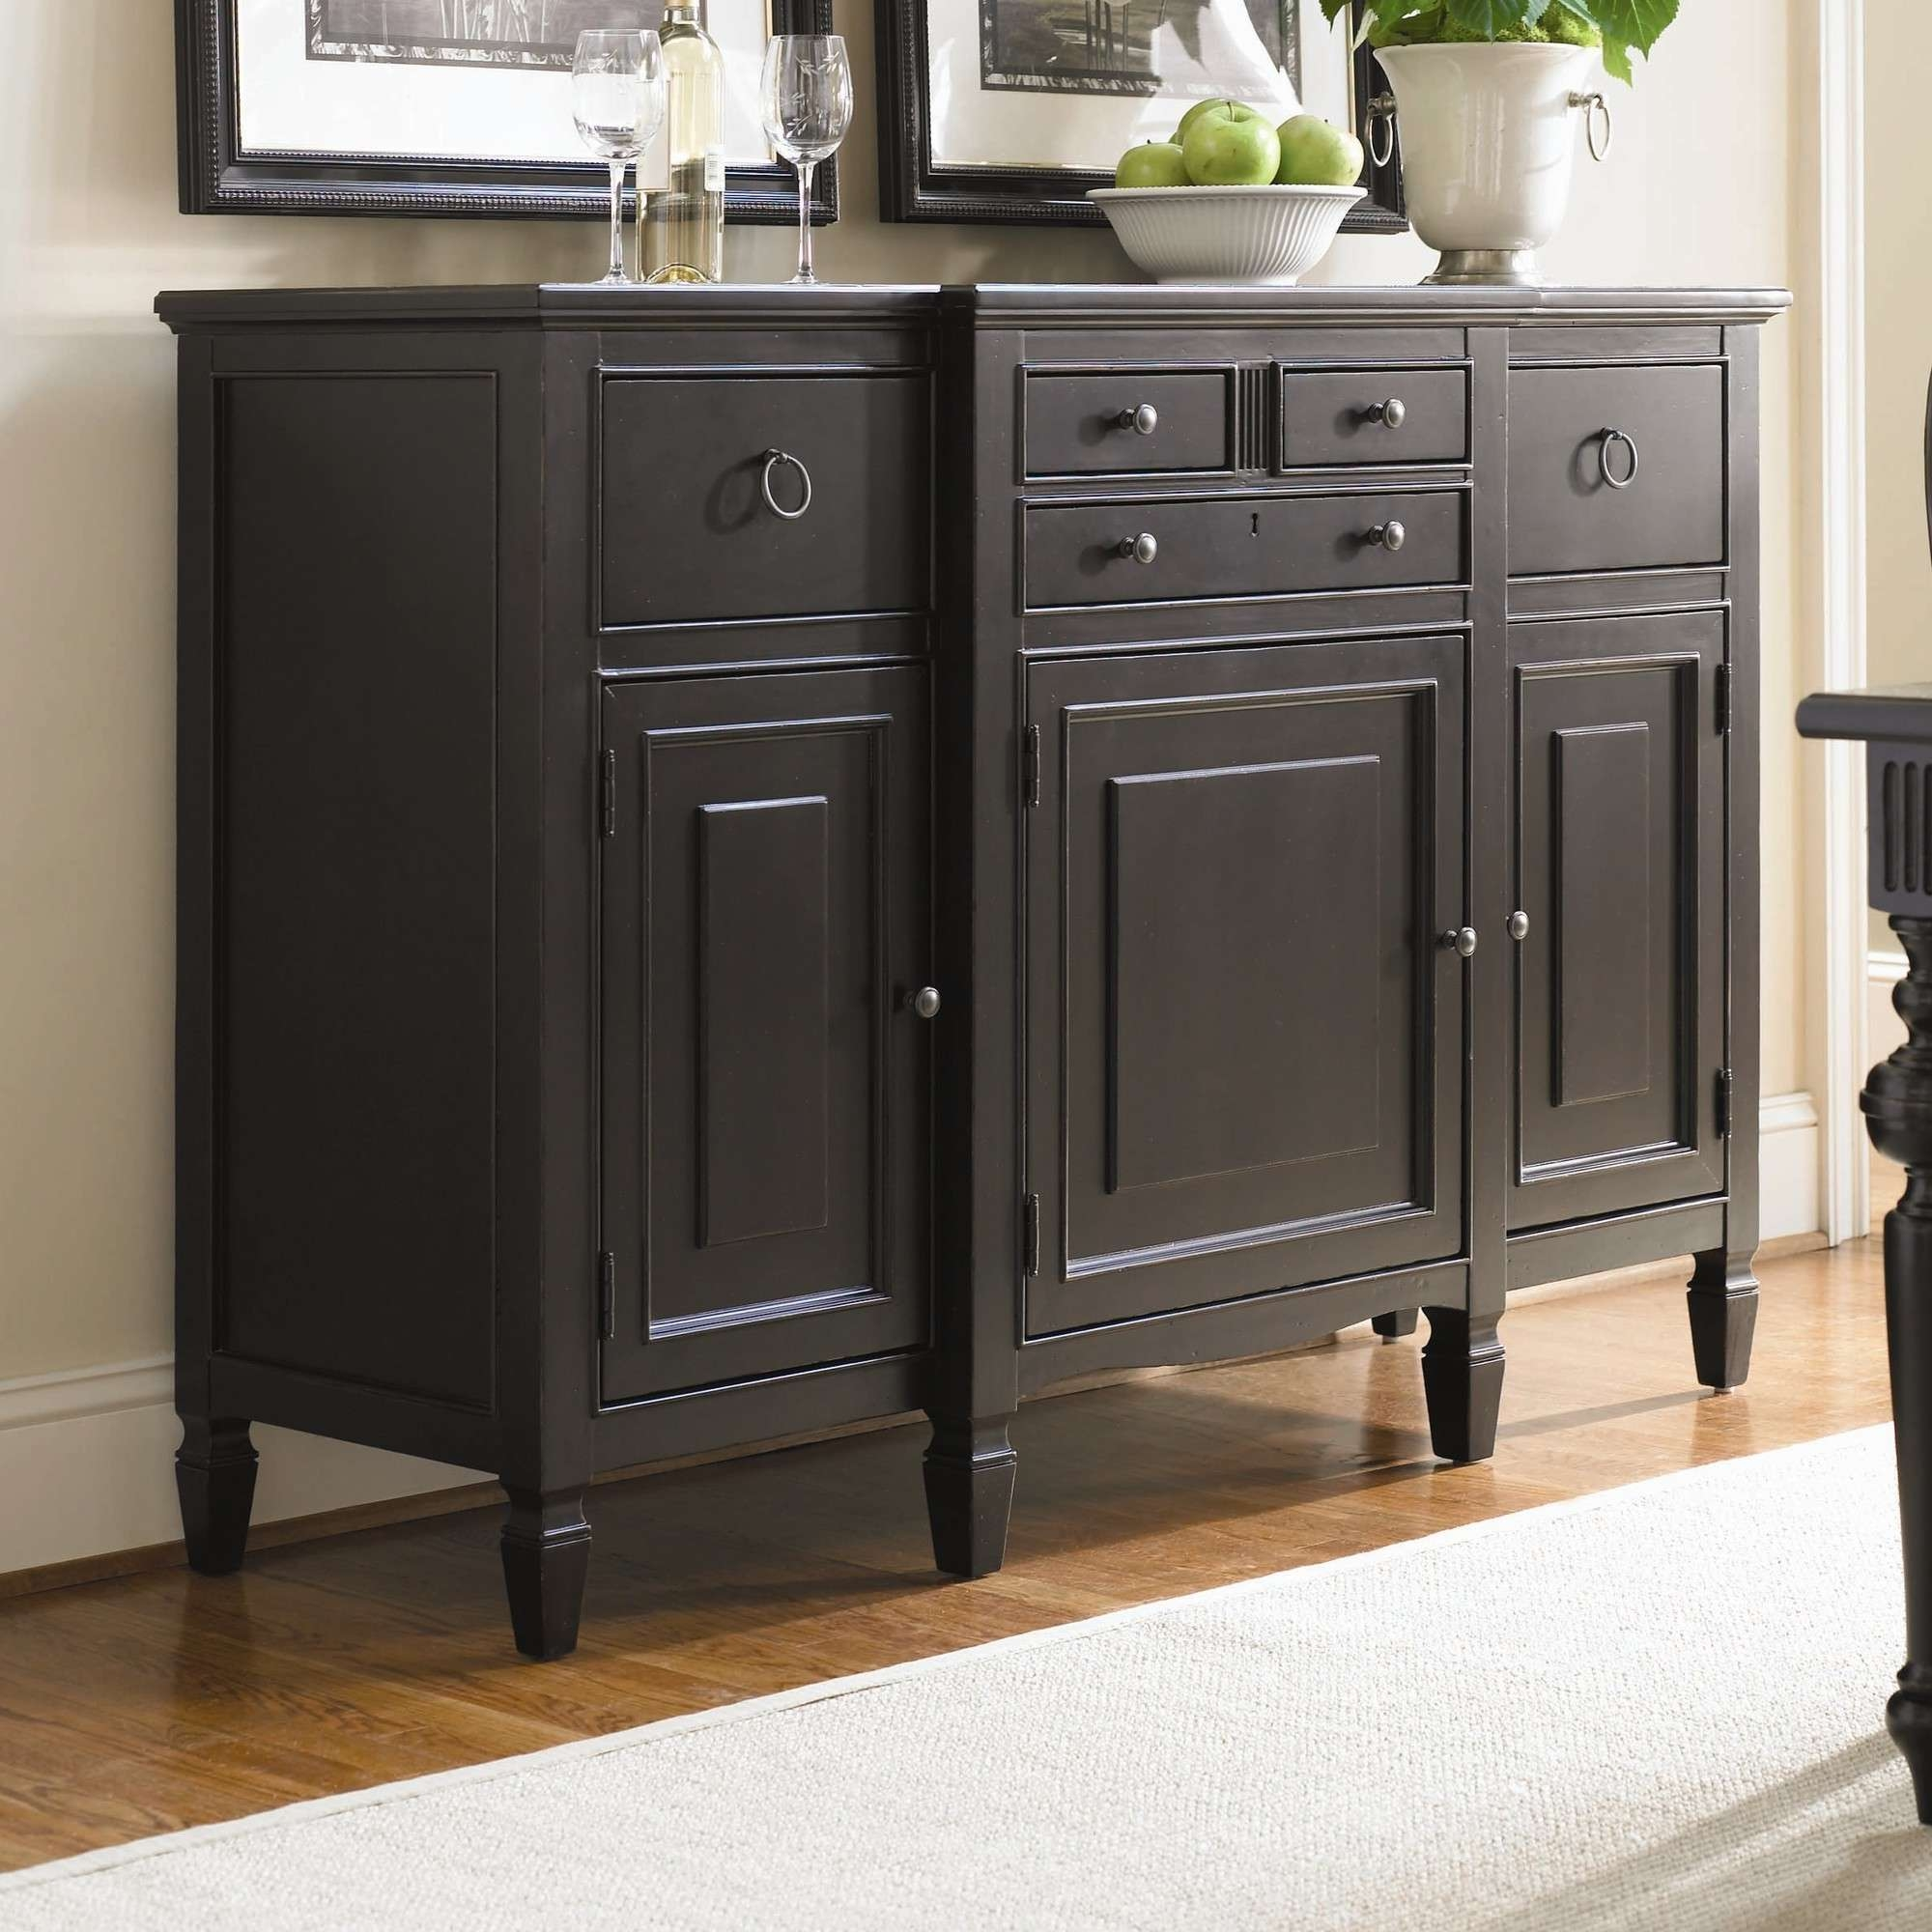 Furniture: Antique Dark Sideboard Buffet With Three Drawers On Within Dining Room Sideboards And Buffets (View 9 of 20)